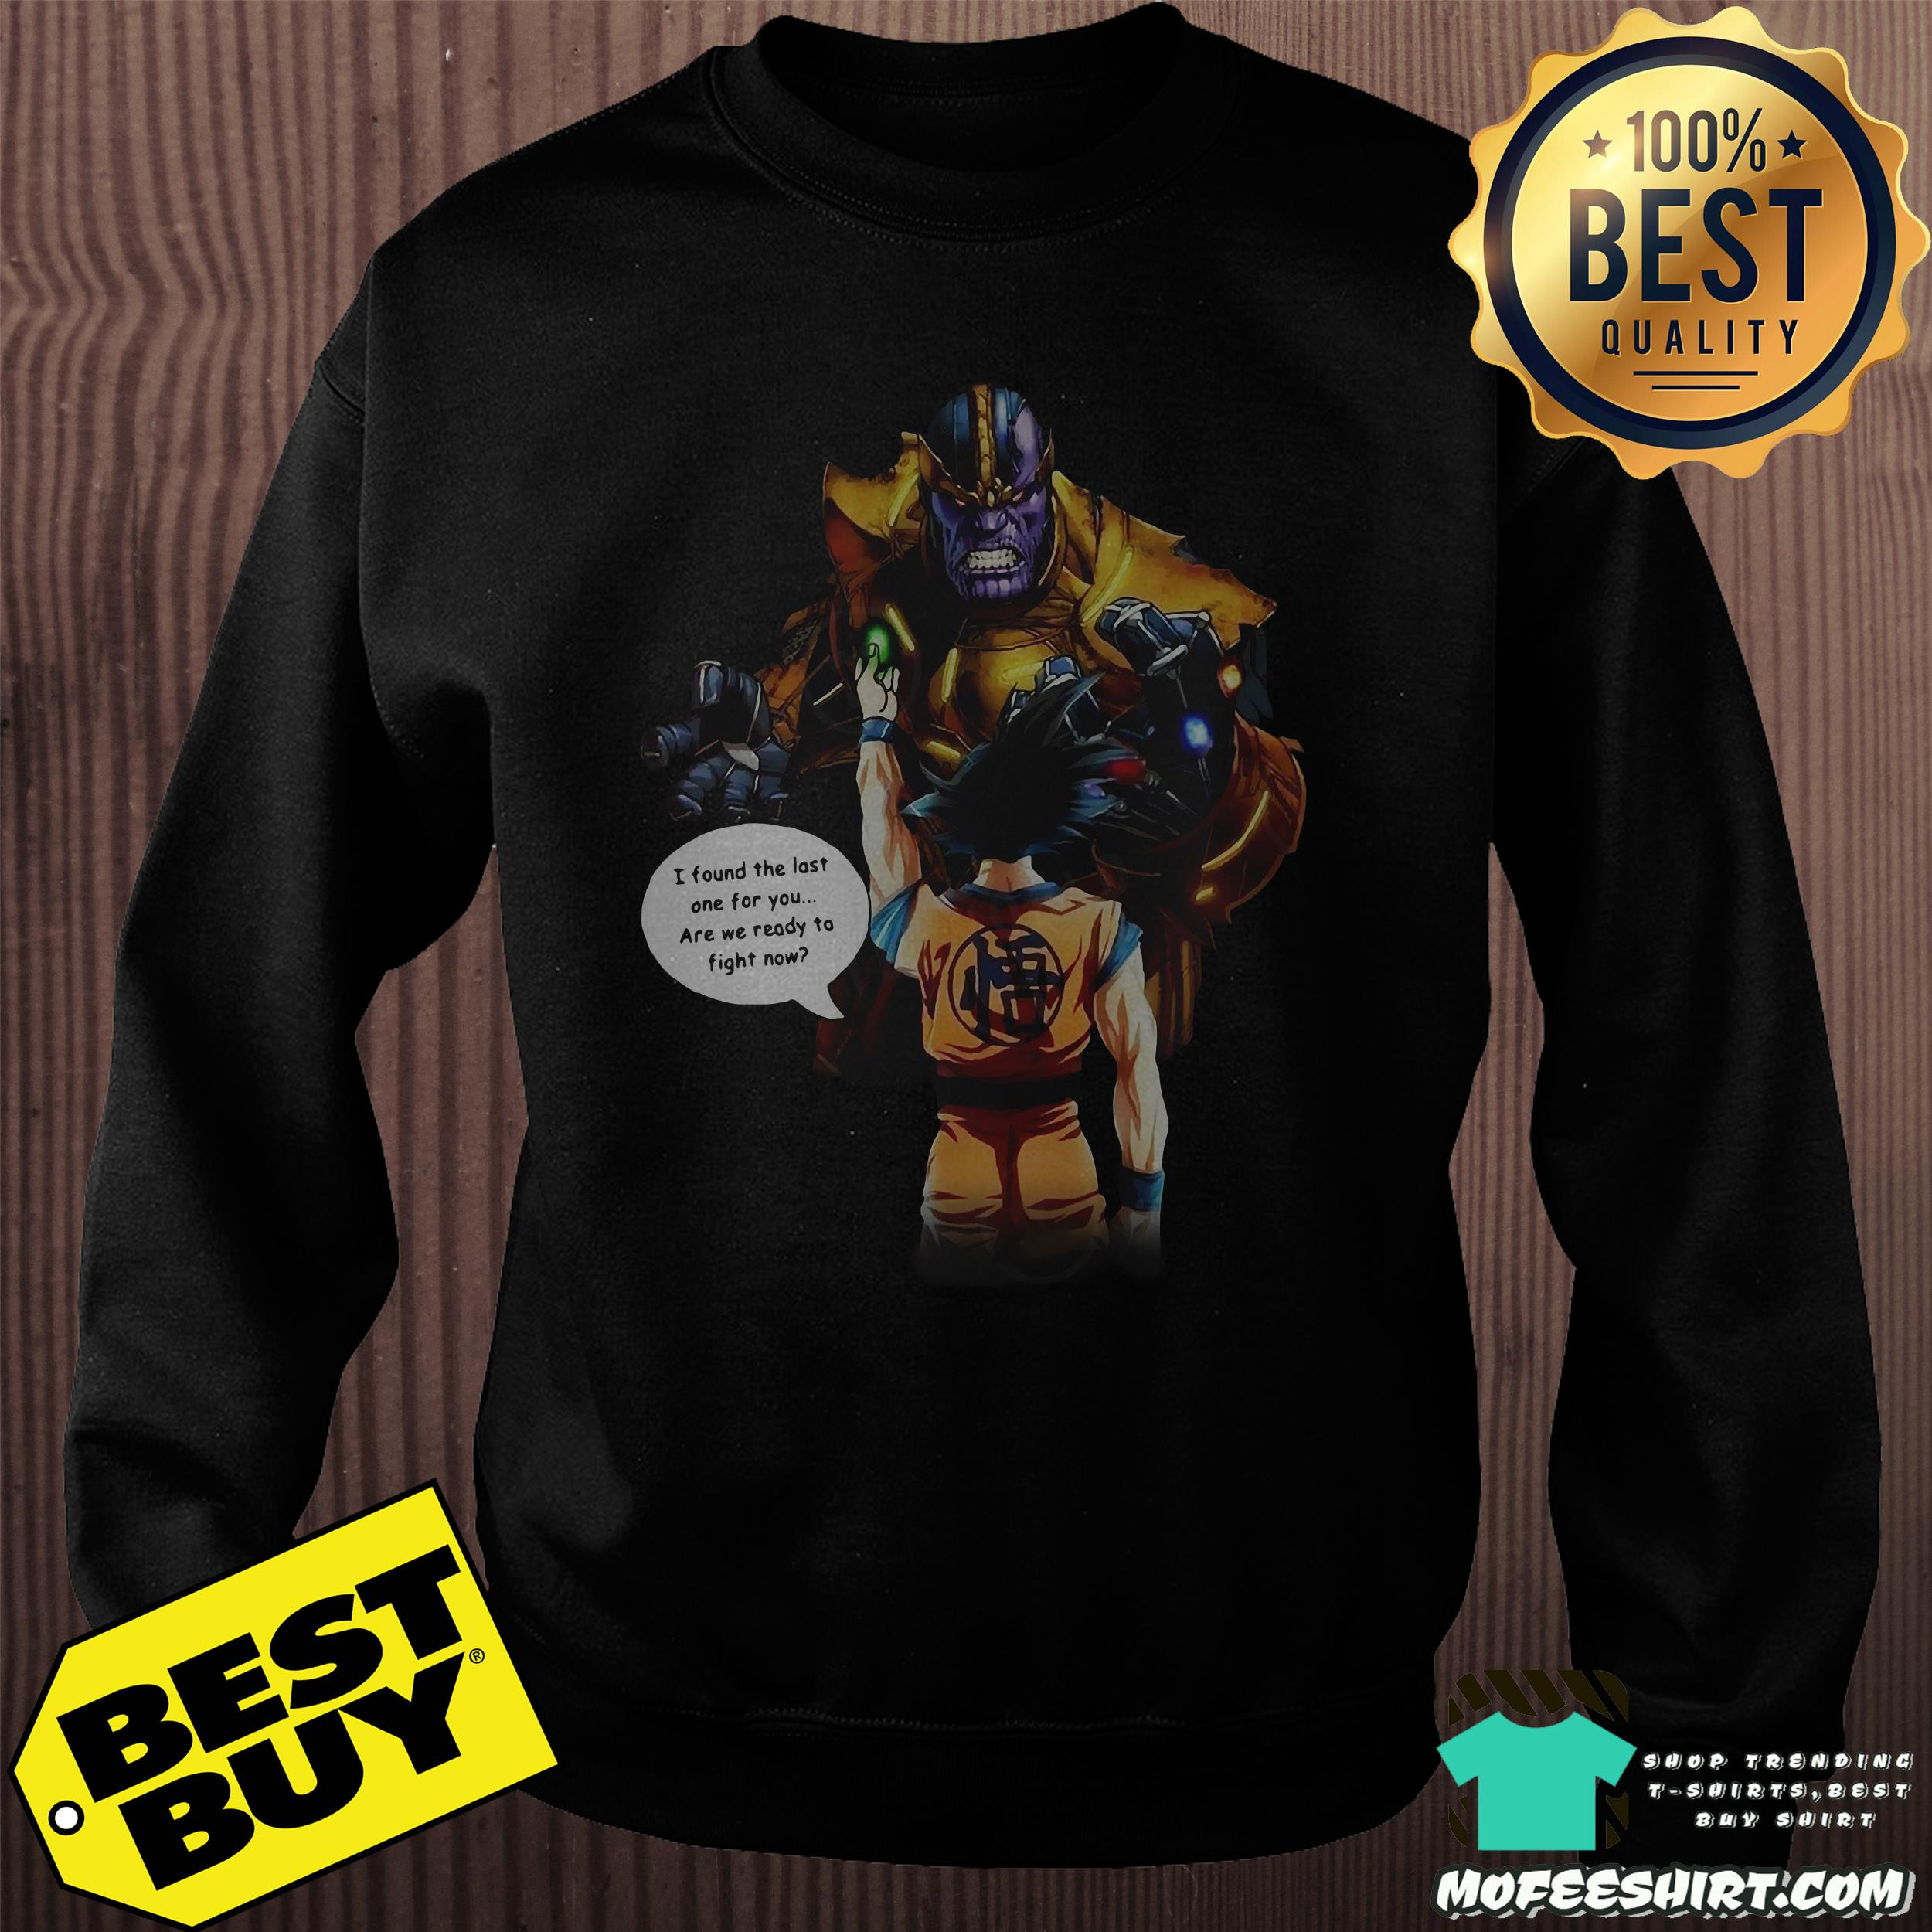 songoku and thanos i found the last one for you sweatshirt - Songoku and Thanos I found the last one for you shirt